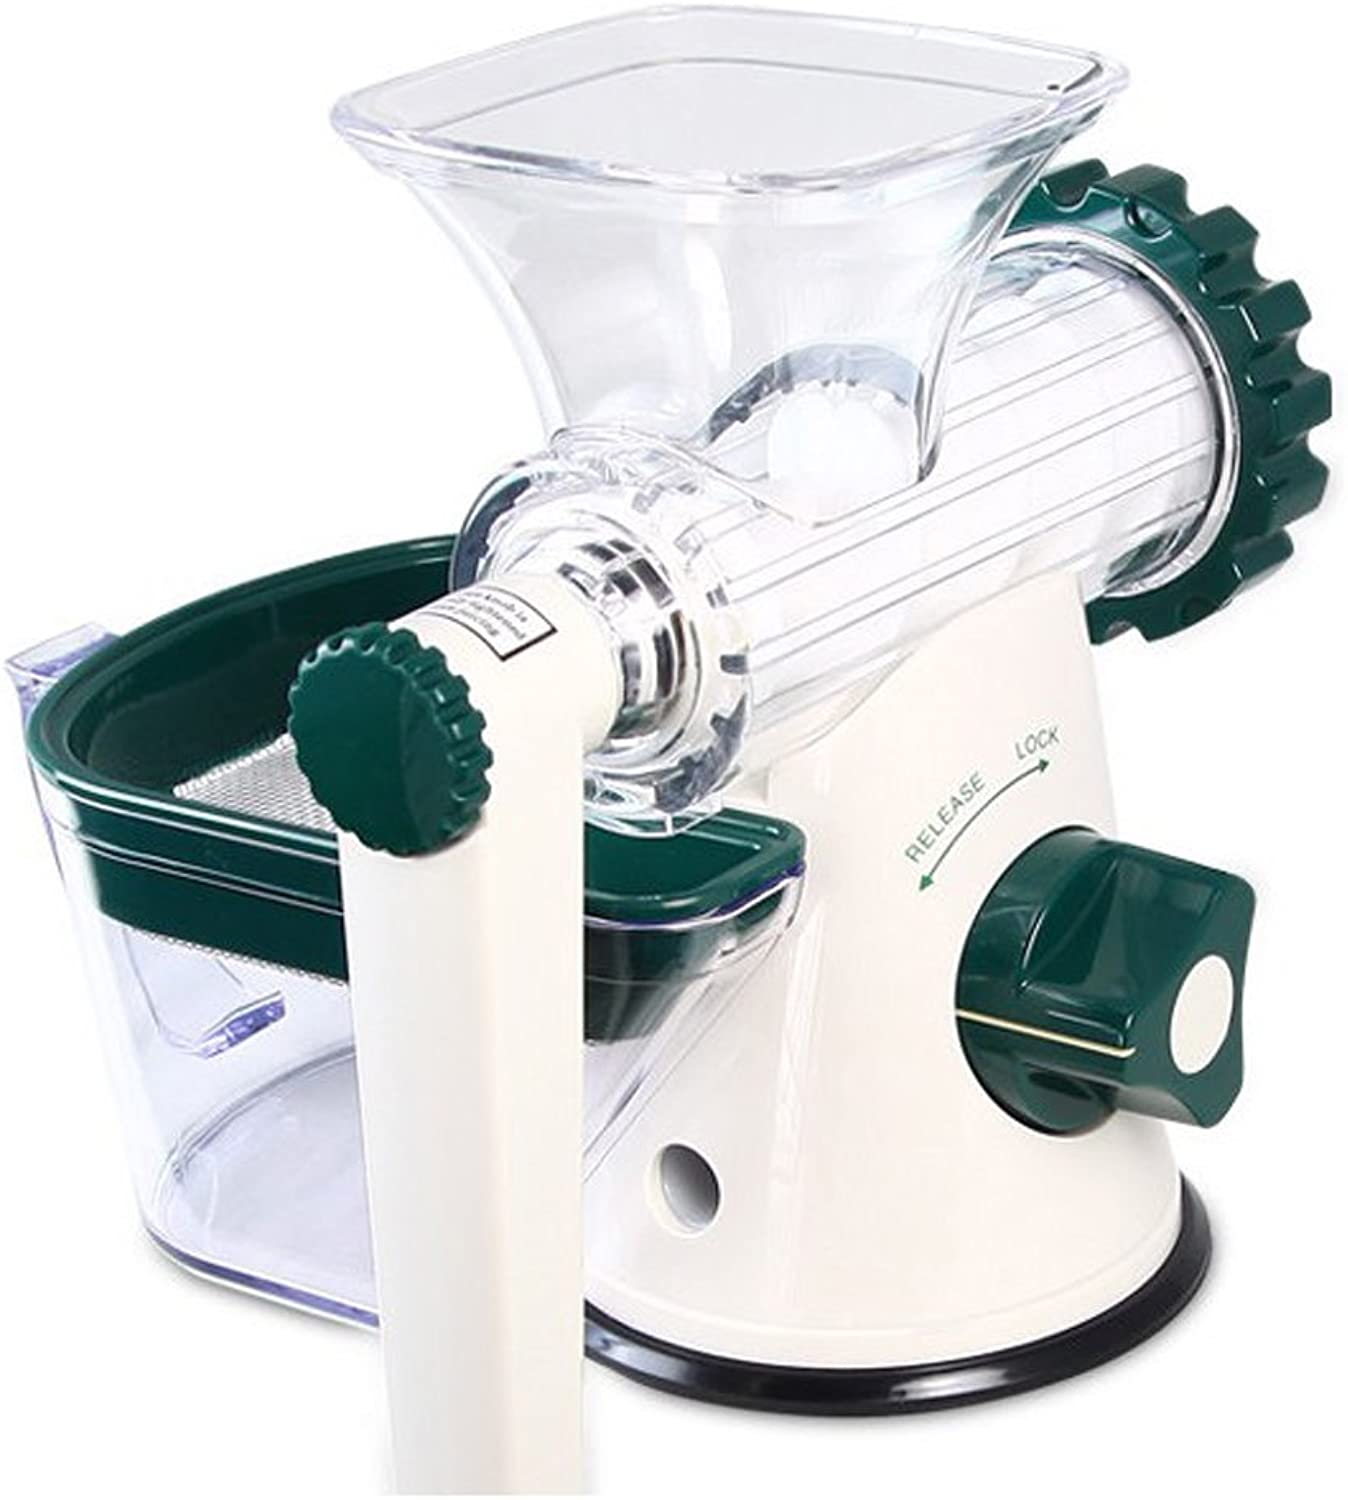 Manually Juicer Household Multifunction Vegetables Fruit Hand Crank Juicer Kitchen Small Tools,D